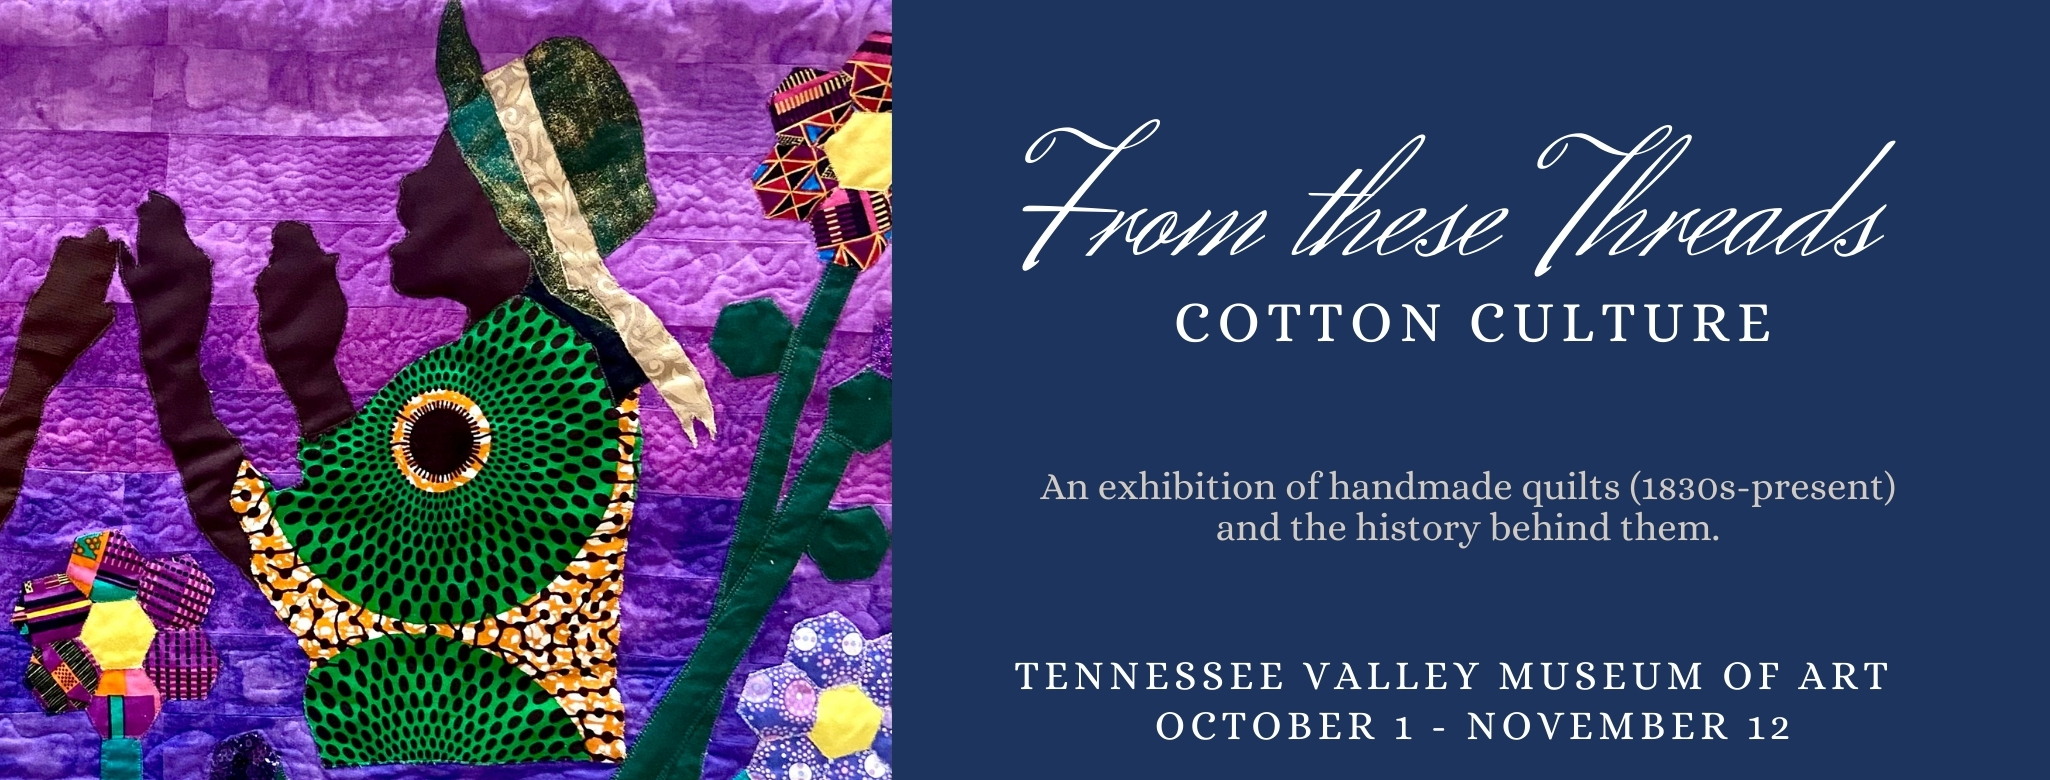 """Photo of purple quilt depicting Black women in a garden, with the words """"From These Threads: Cotton Culture - An exhibition of handmade quilts (1830s-present) and the history behind them. - Tennessee Valley Museum of Art - October 1 - November 12"""